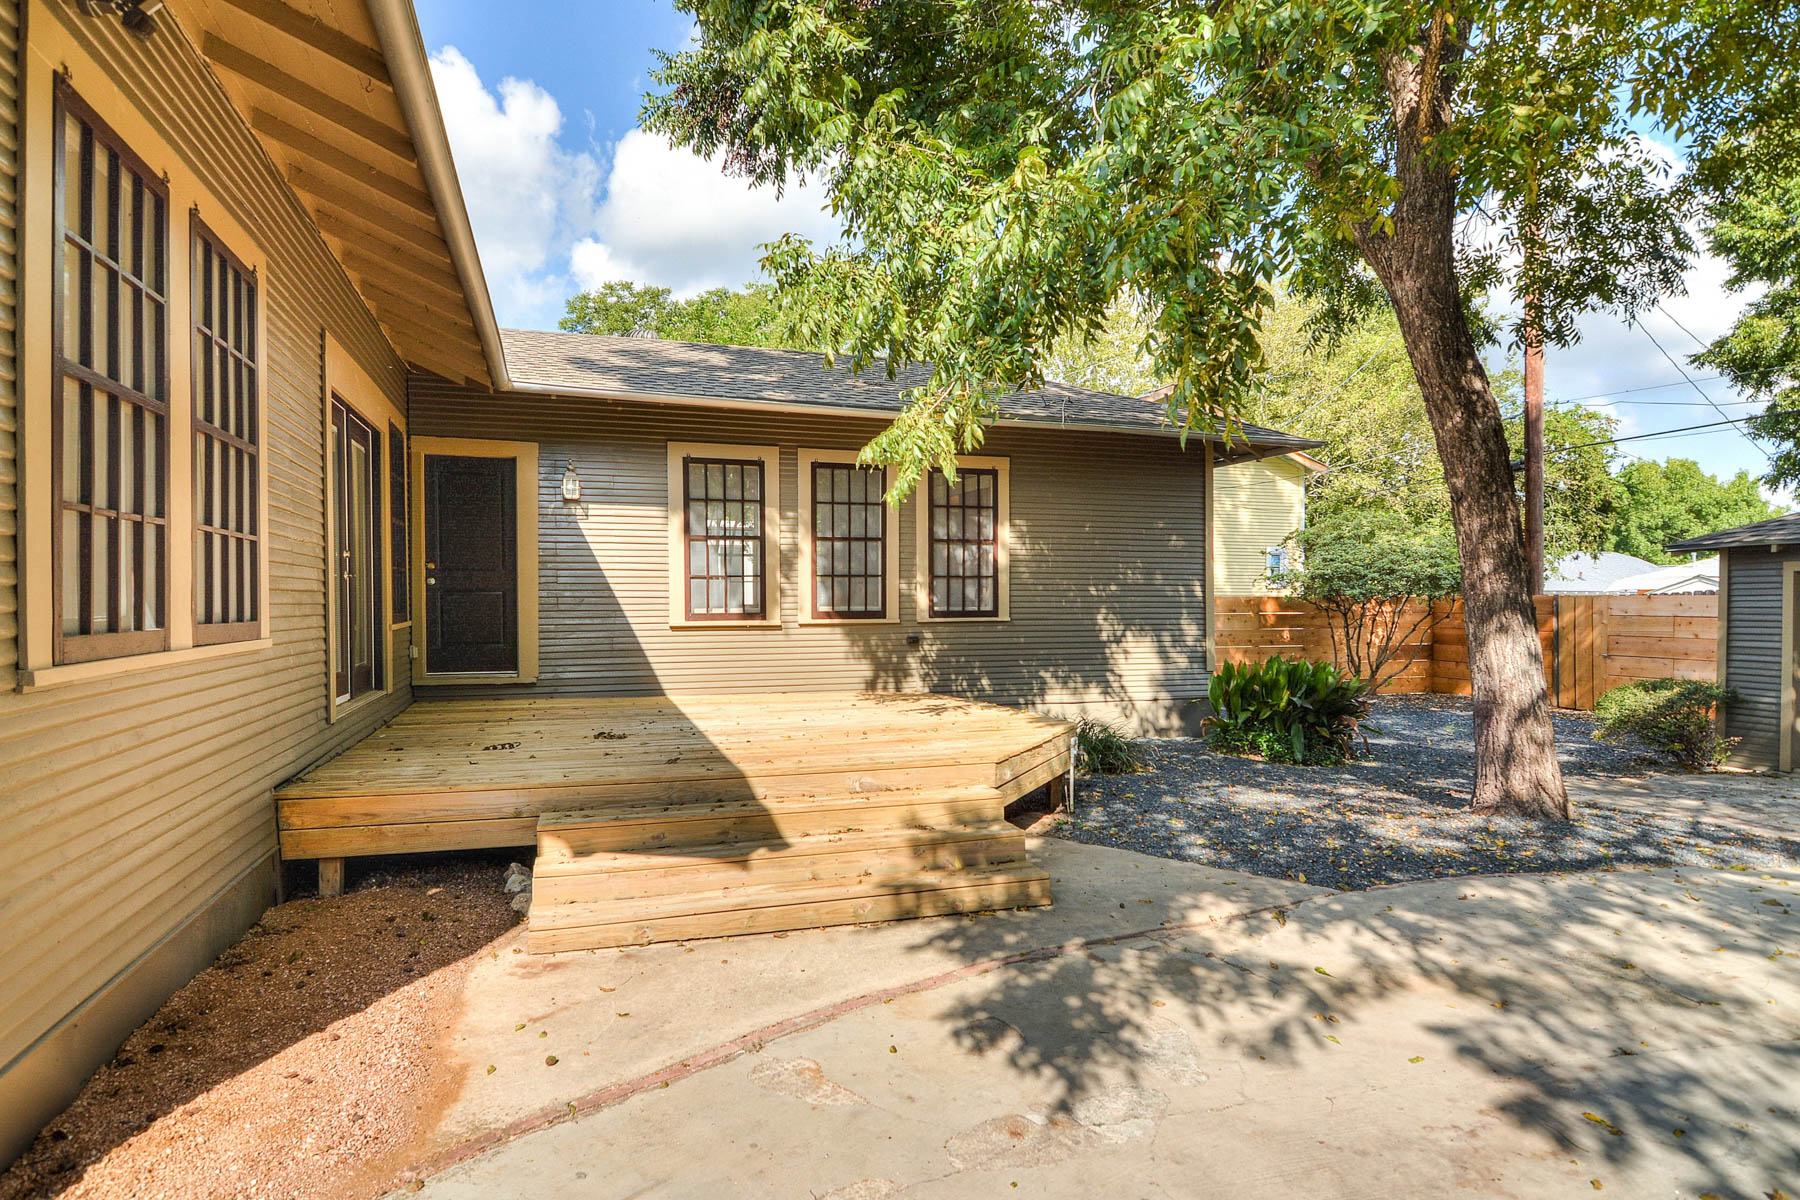 Additional photo for property listing at Mahncke Park Craftsman Bungalow 339 Pershing Ave San Antonio, Texas 78209 United States